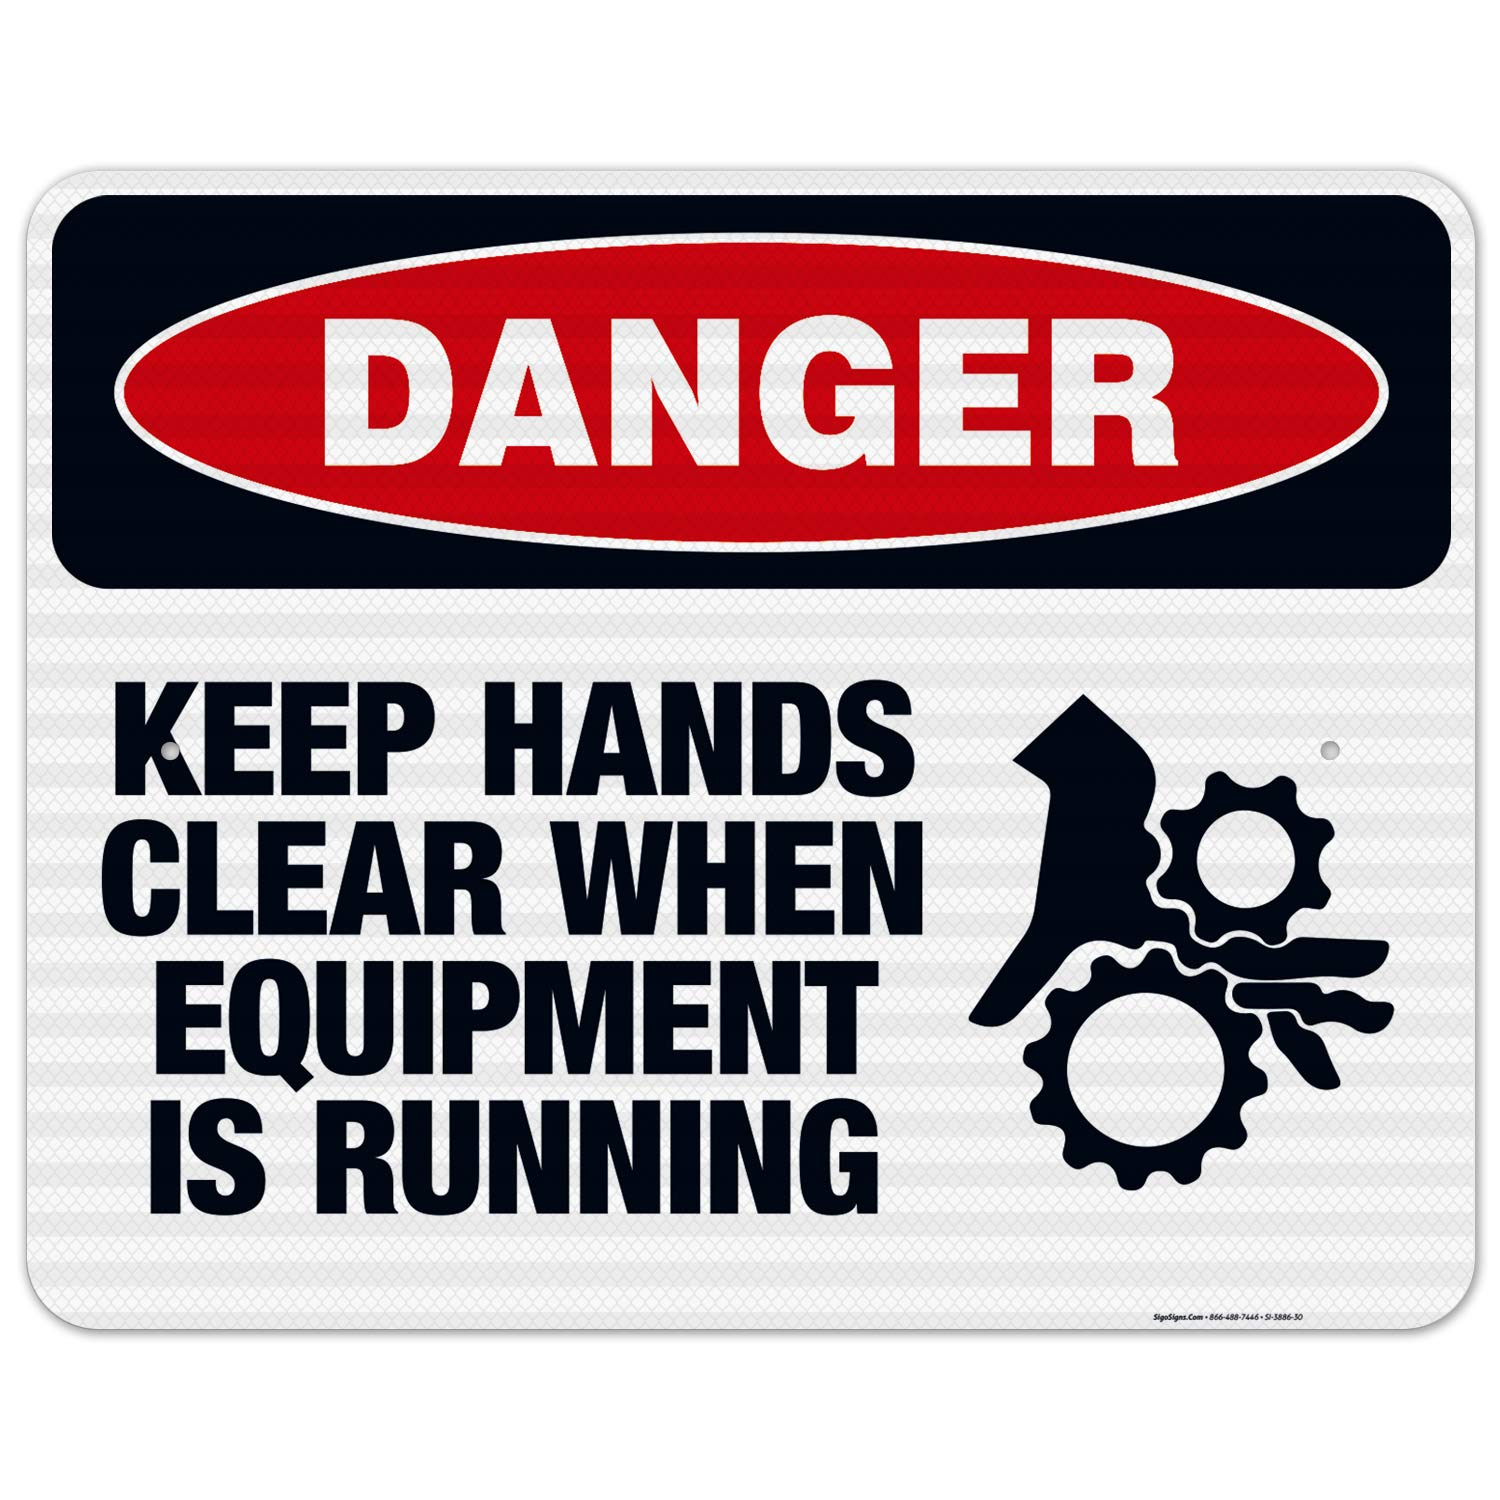 Max 51% OFF Keep Hands Clear When Equipment is Running Sign Sig Danger Mail order OSHA